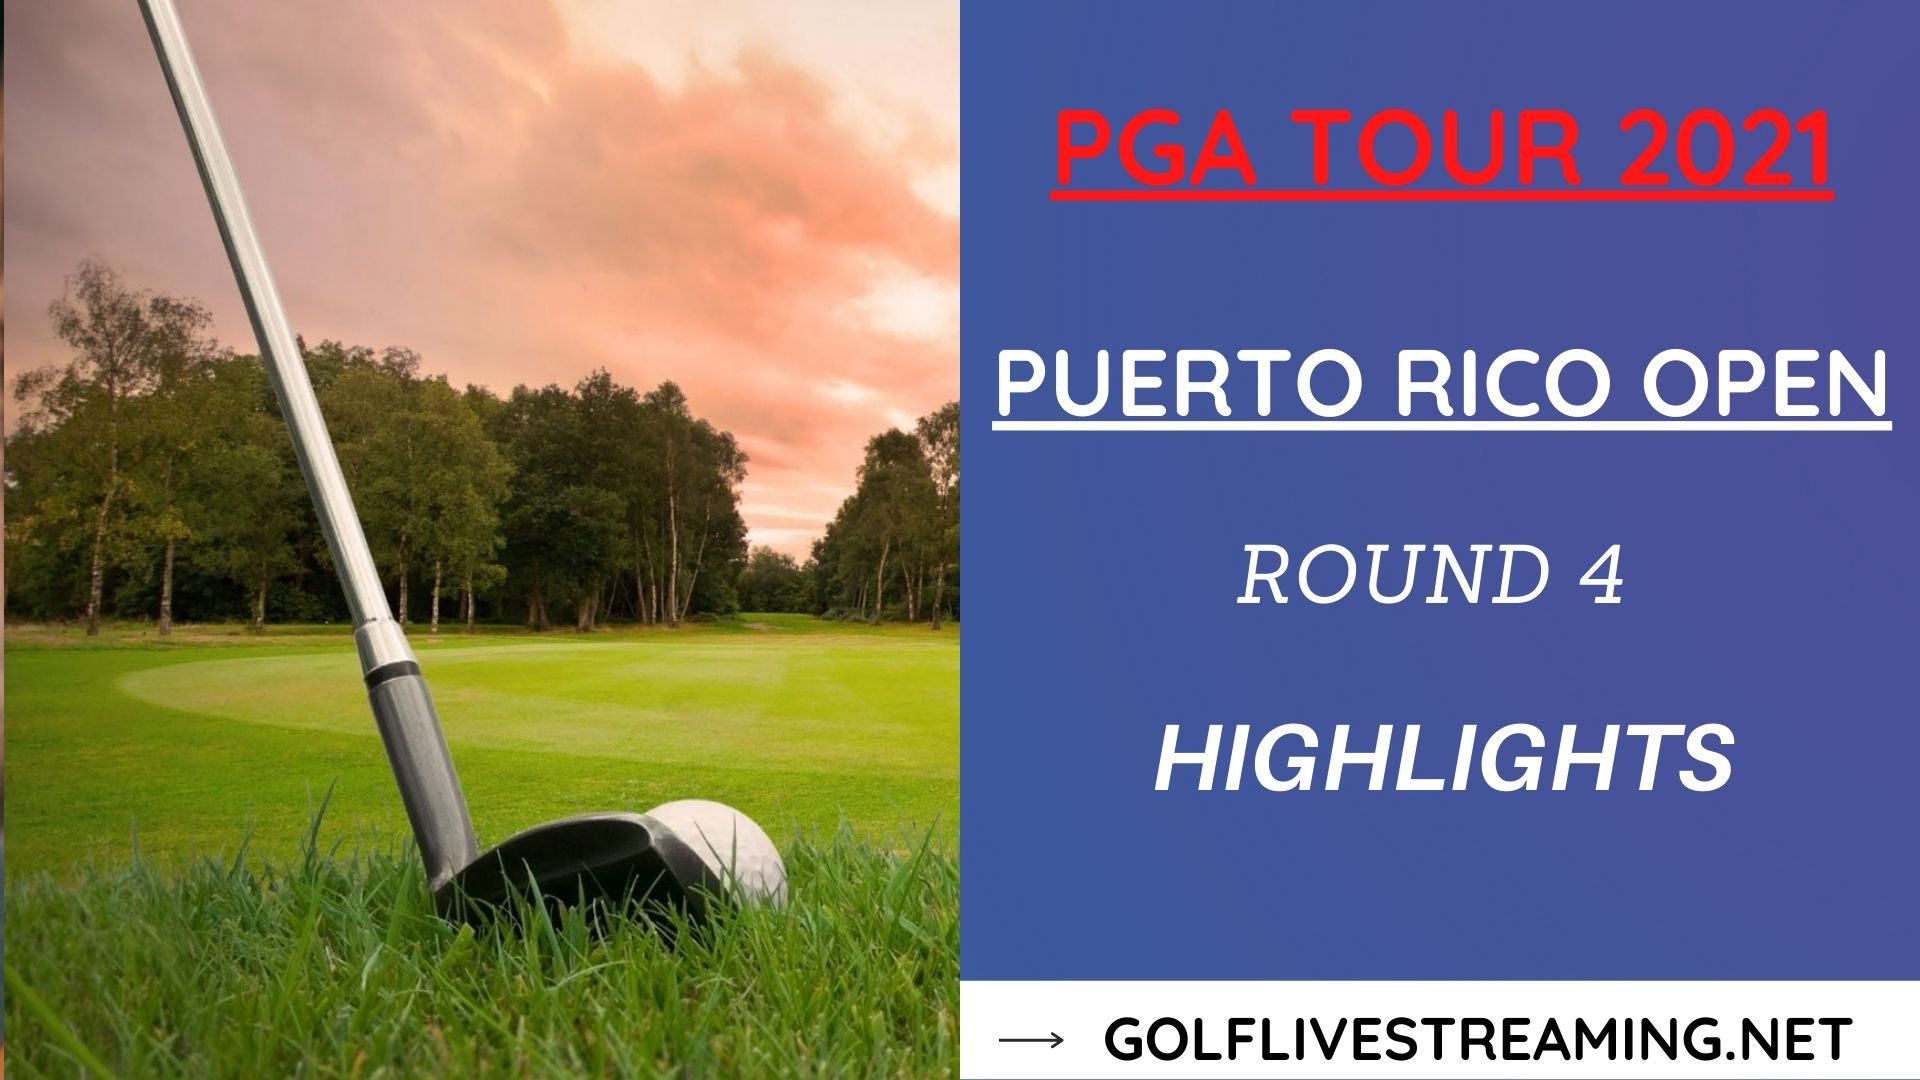 Puerto Rico Open Round 4 Highlights 2021 PGA Tour